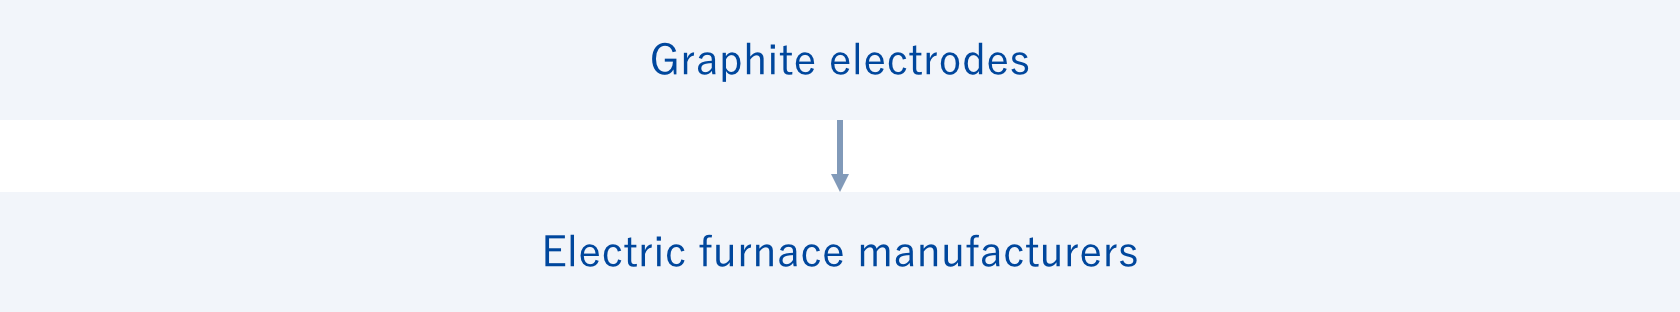 Graphite electrode Electric furnace manufacturers